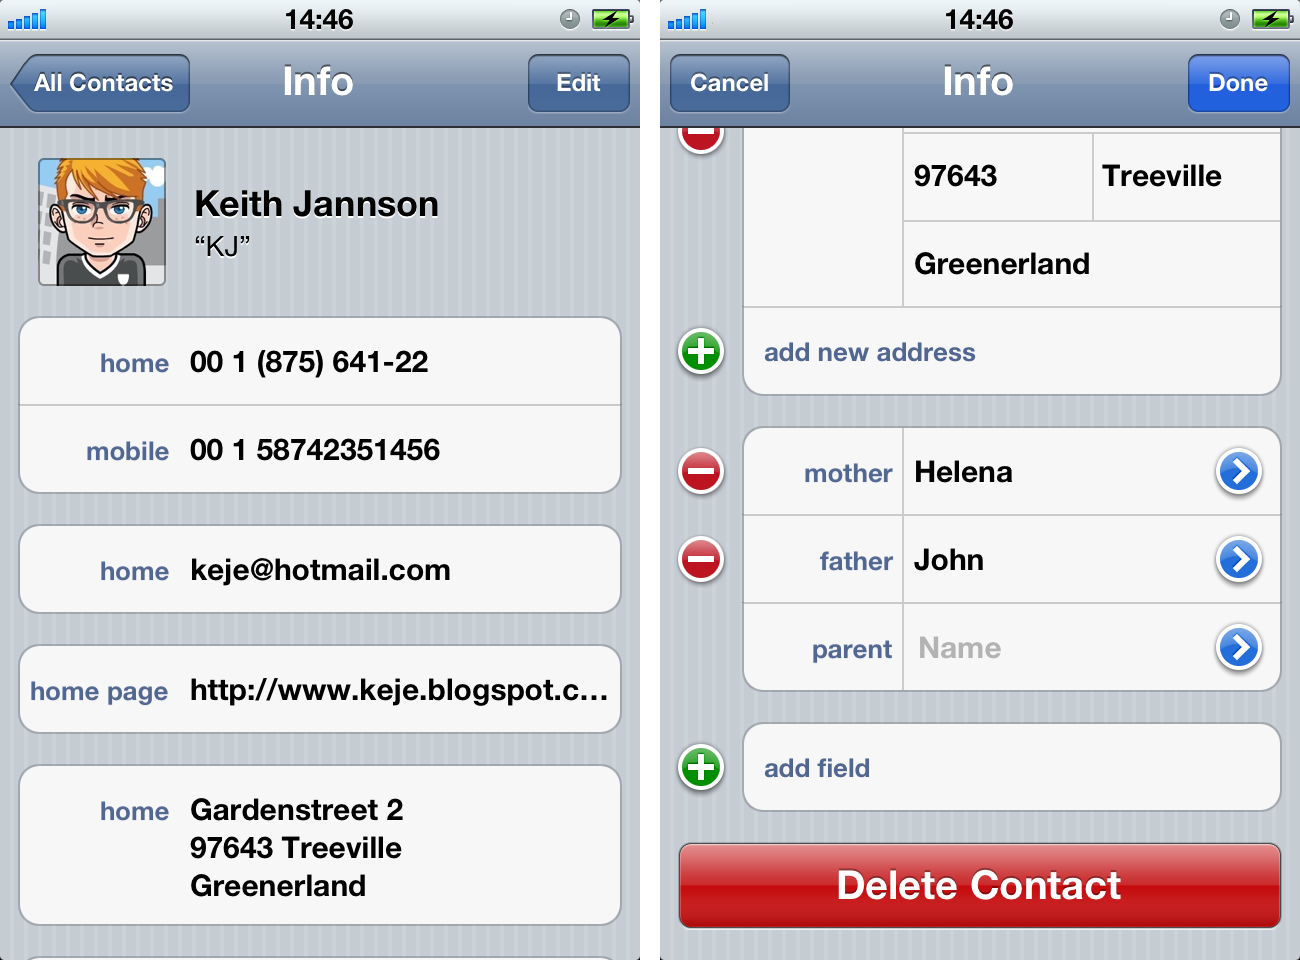 how to delete contacts on iphone fast how to delete a contact on iphone iphone contacts how to 1659